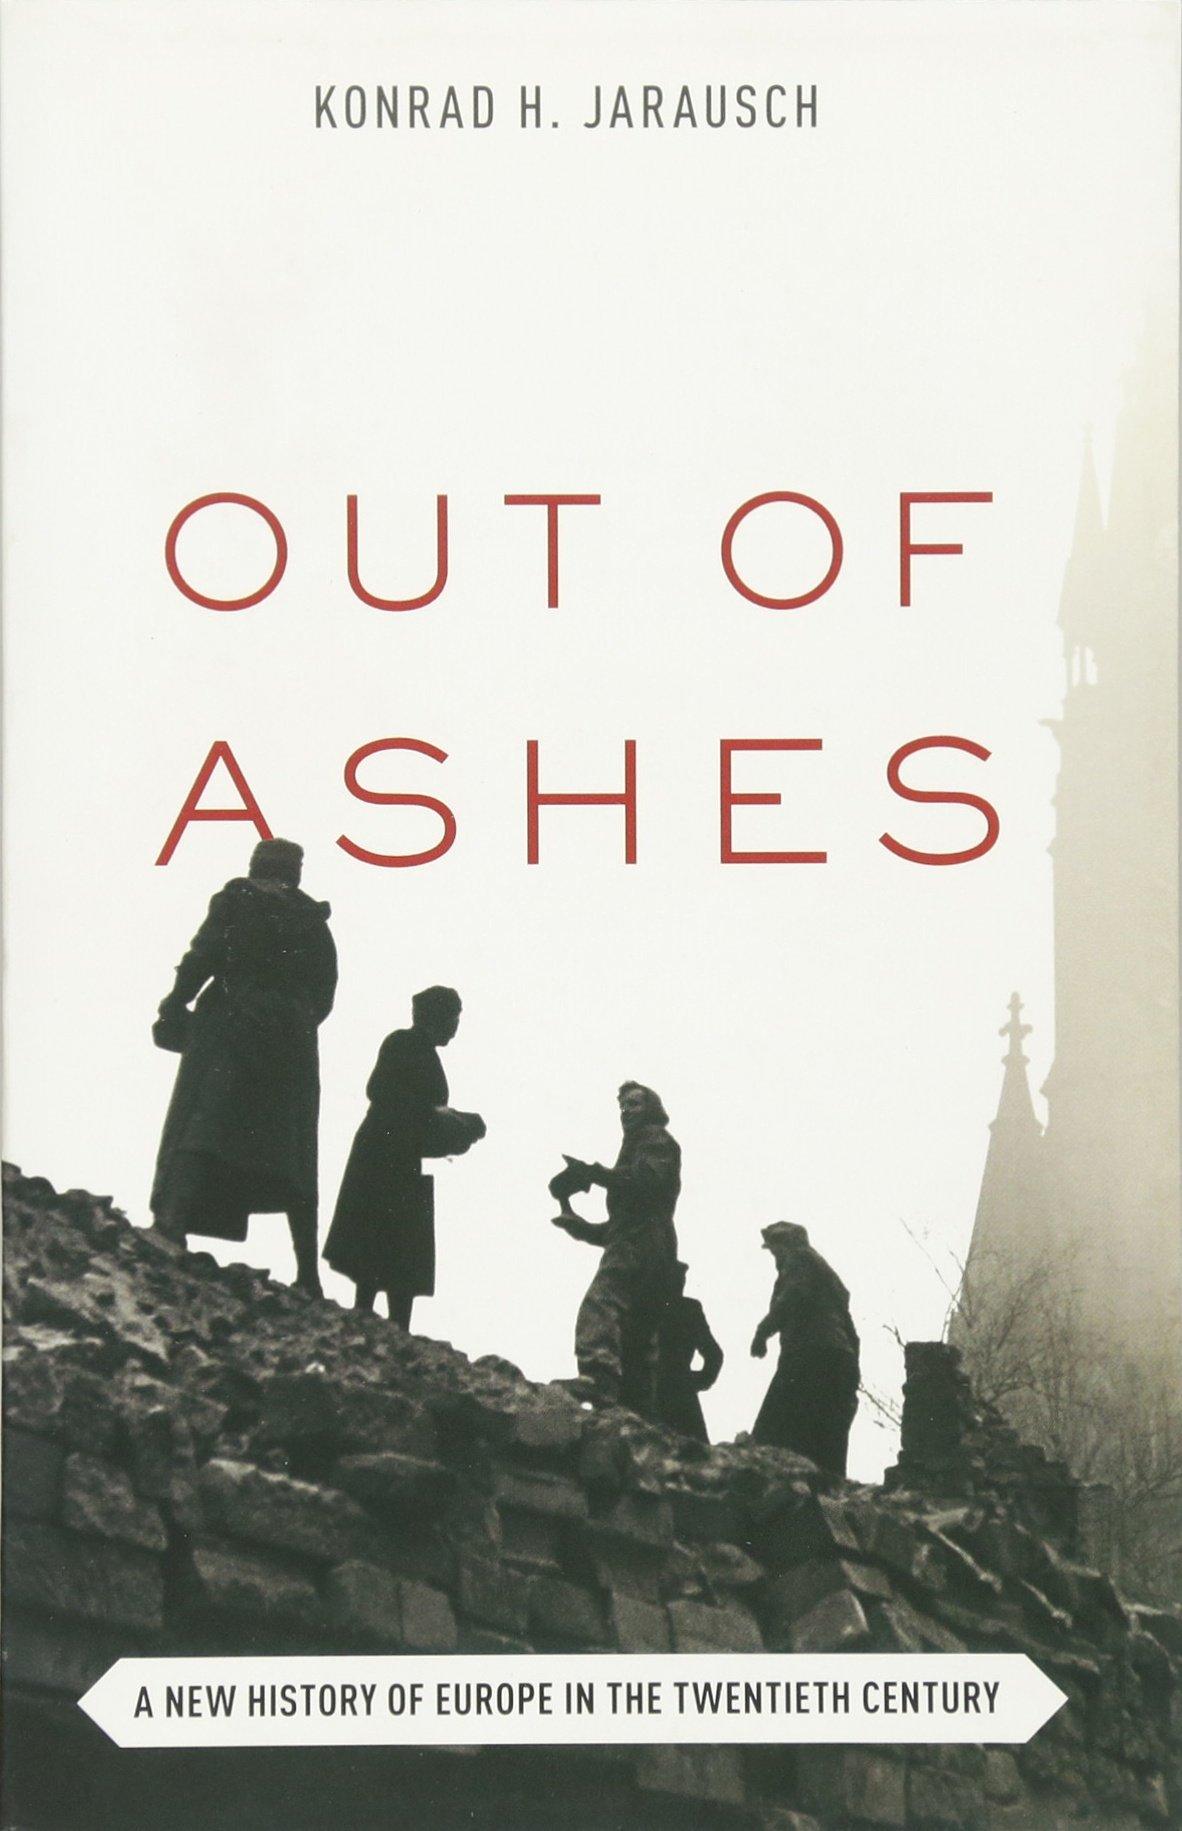 Out of Ashes: A New History of Europe in the Twentieth Century: Konrad H.  Jarausch: 9780691173078: Amazon.com: Books